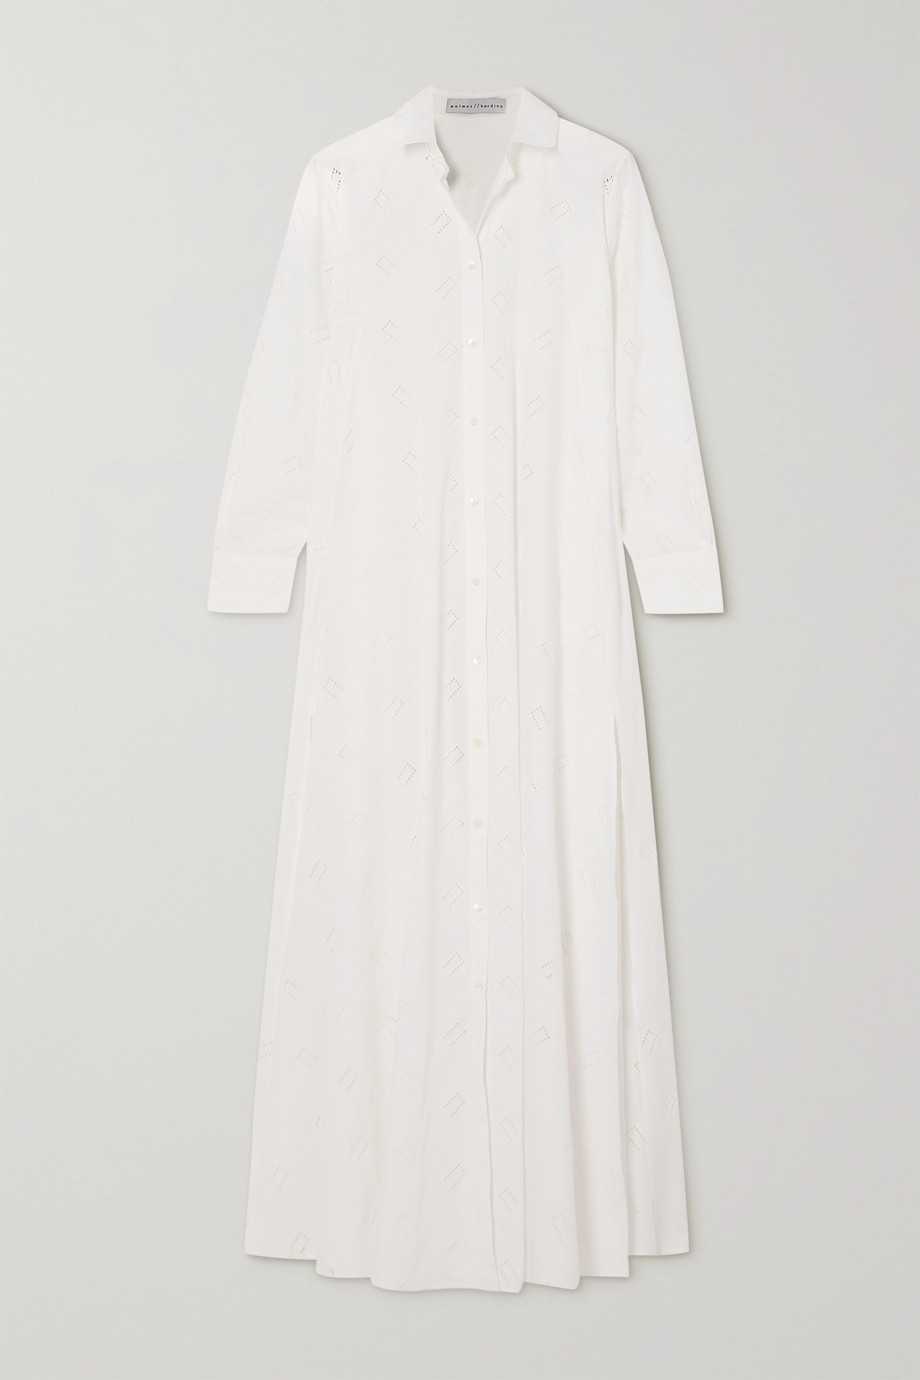 palmer//harding Casablanca broderie anglaise cotton-blend poplin maxi shirt dress